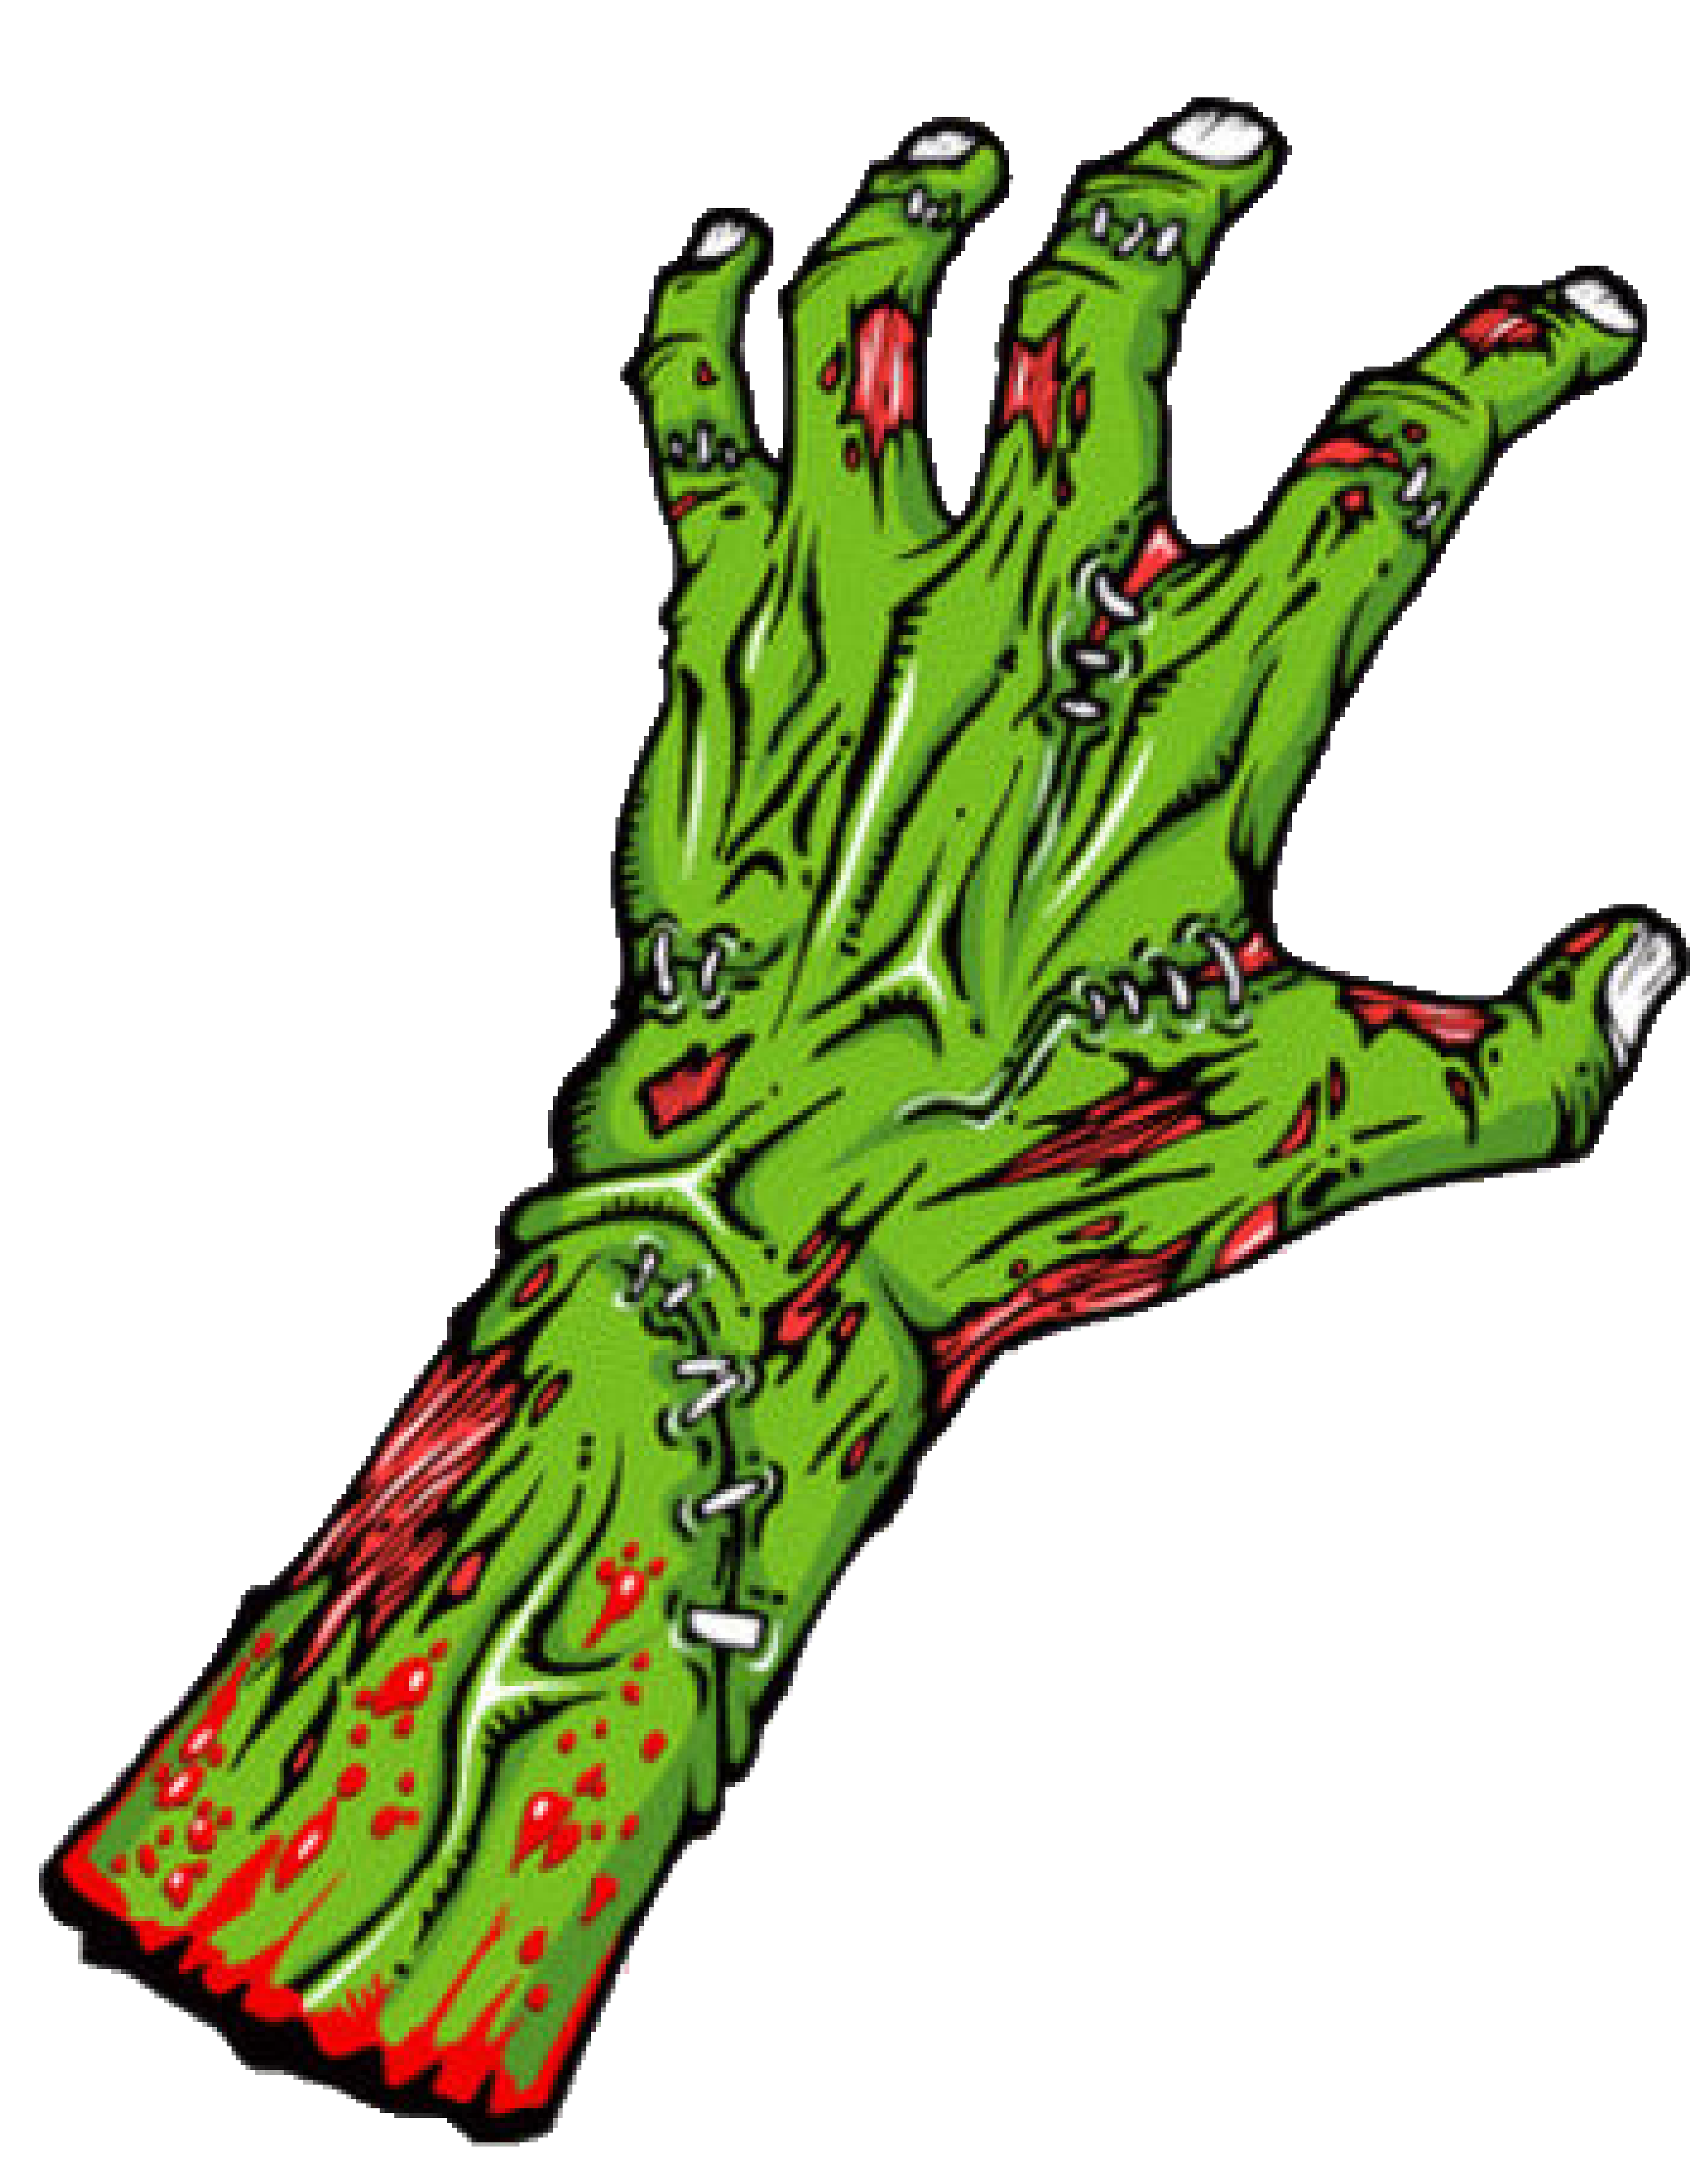 Green Zombie Hand Transparent Png Stickpng We upload amazing new content everyday! stickpng